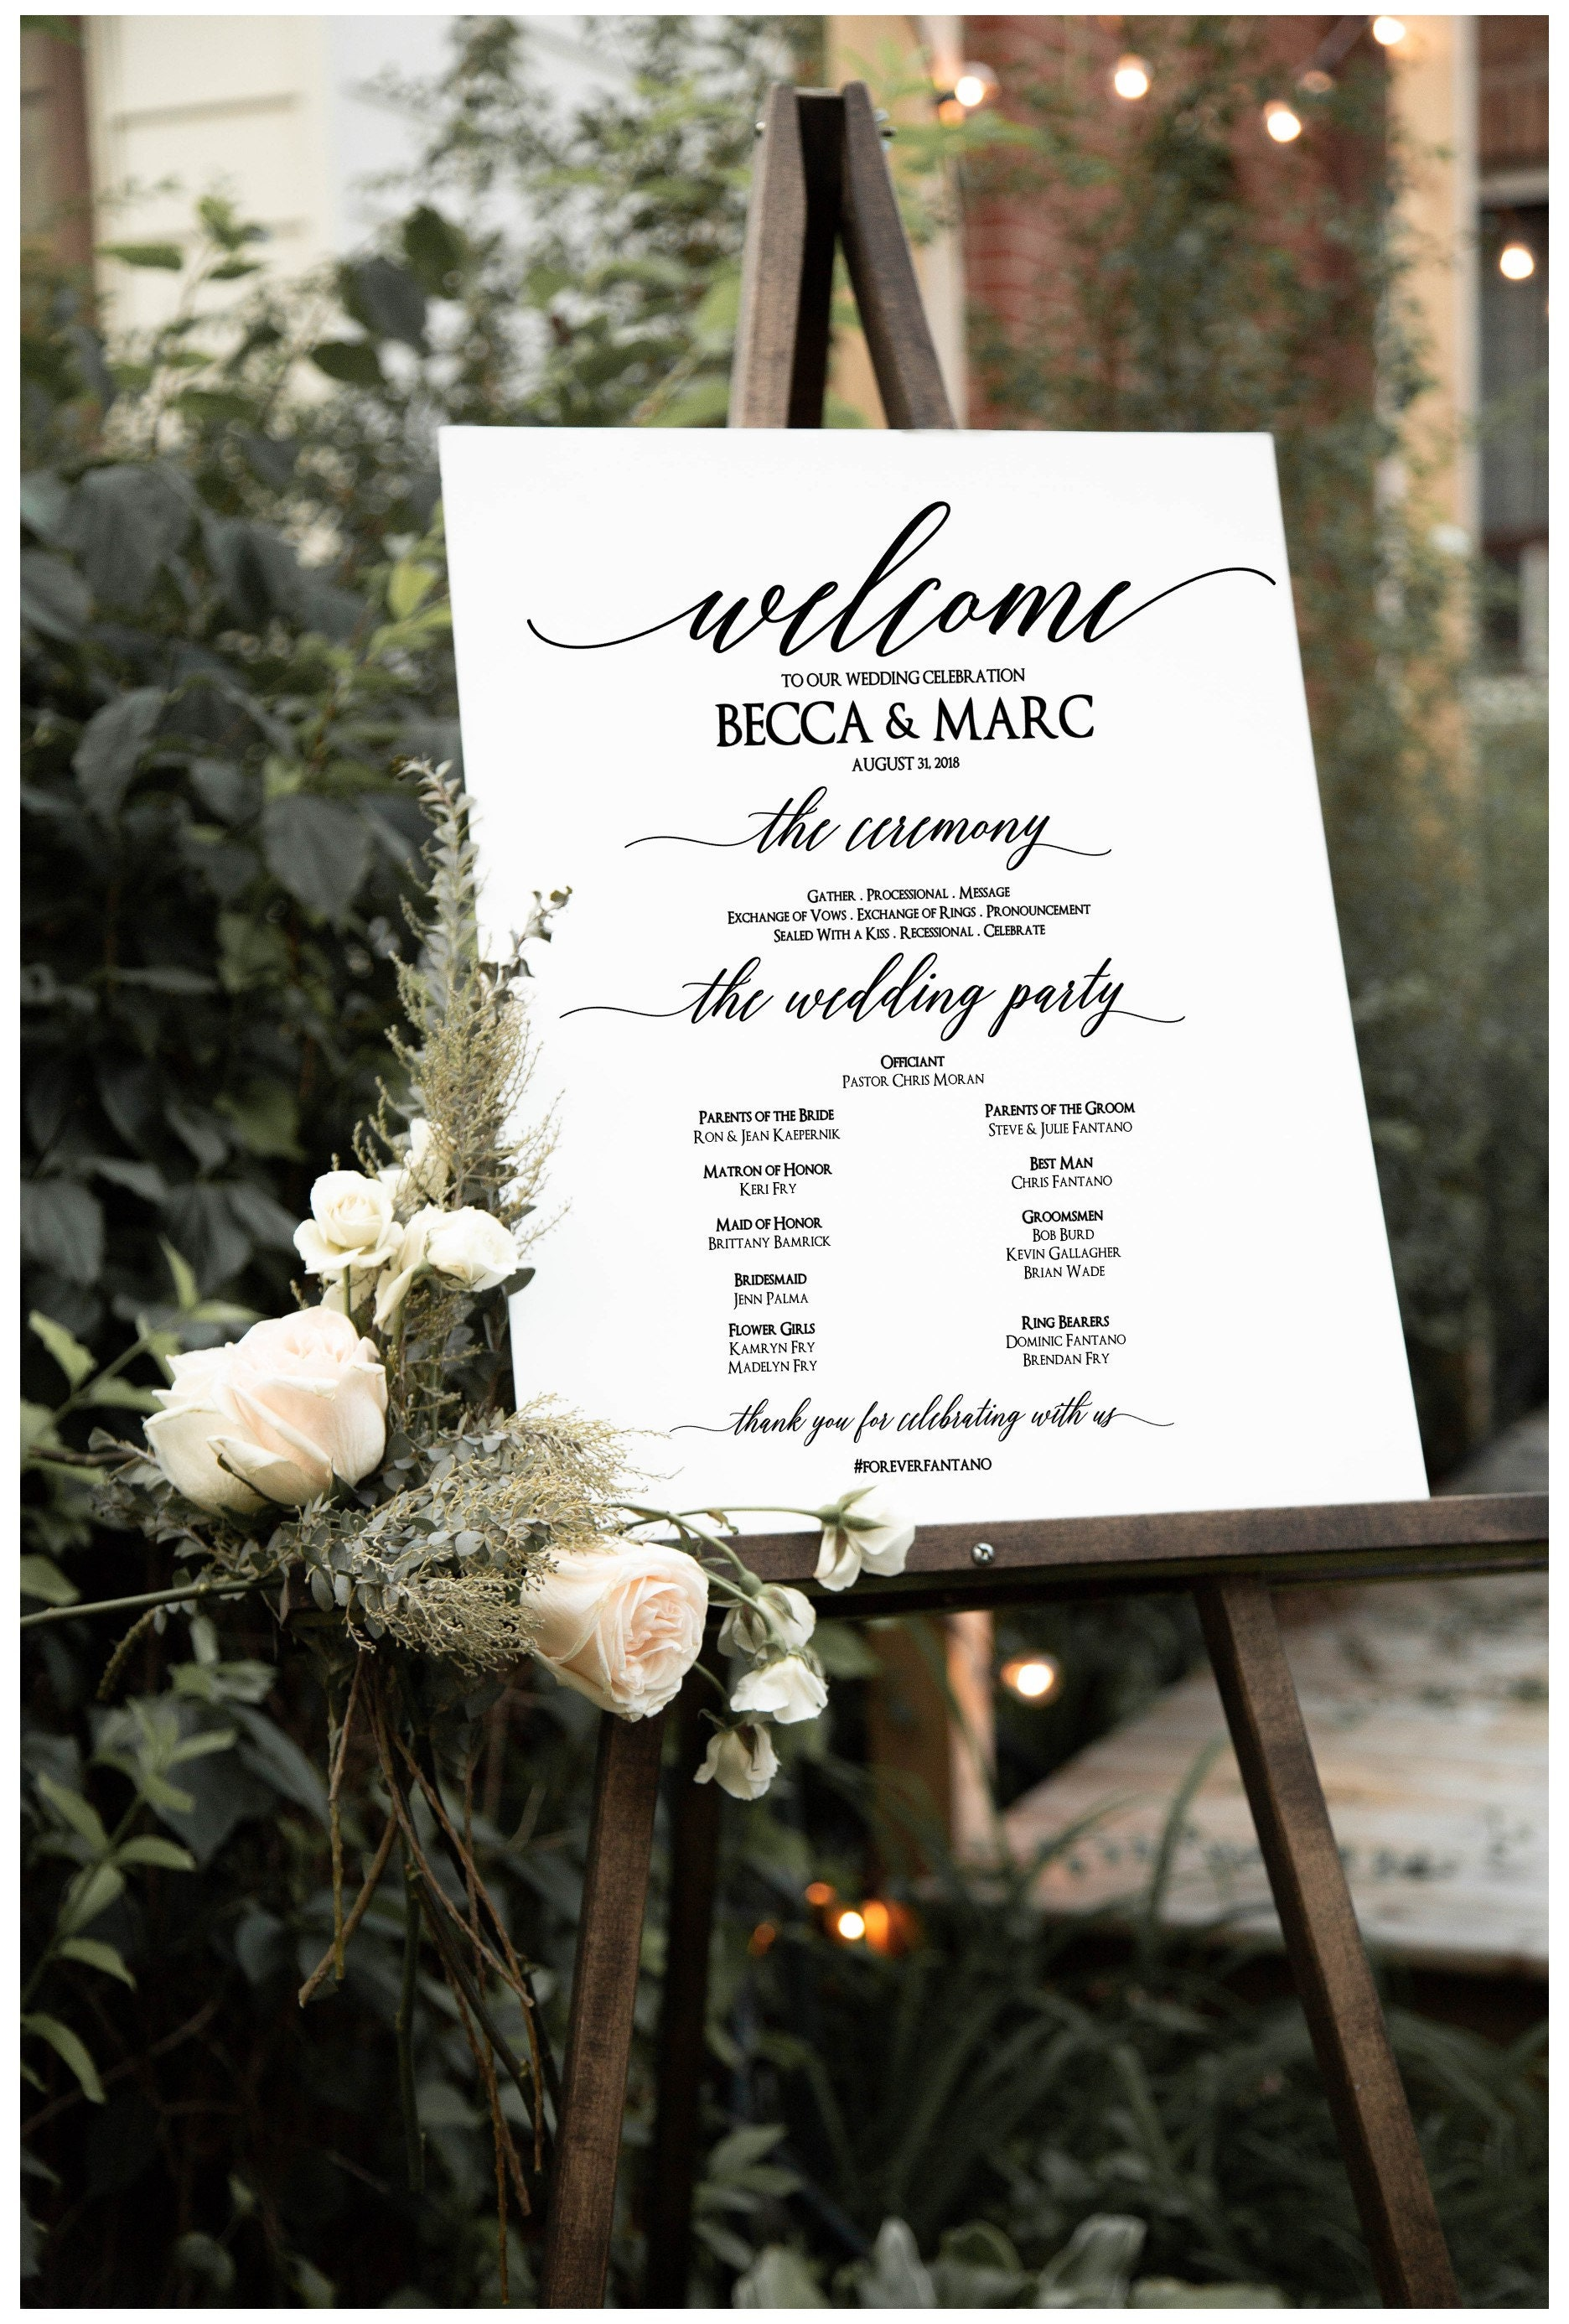 69465dc0c1c Bridal Party Program Order of Ceremony Vinyl Decal Welcome